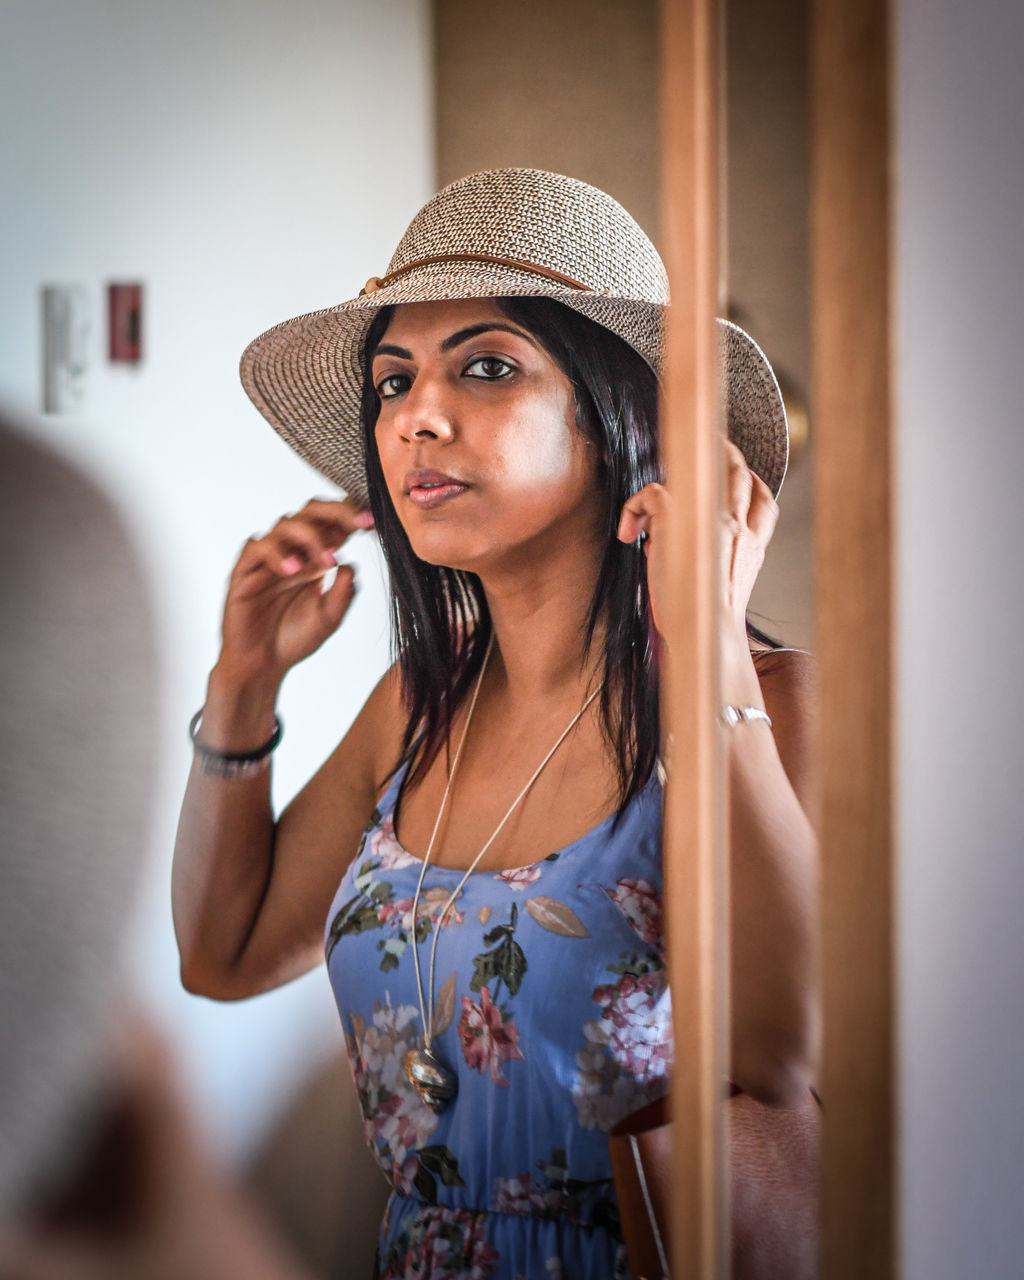 Reflection Of Woman On Mirror Getting Dressed